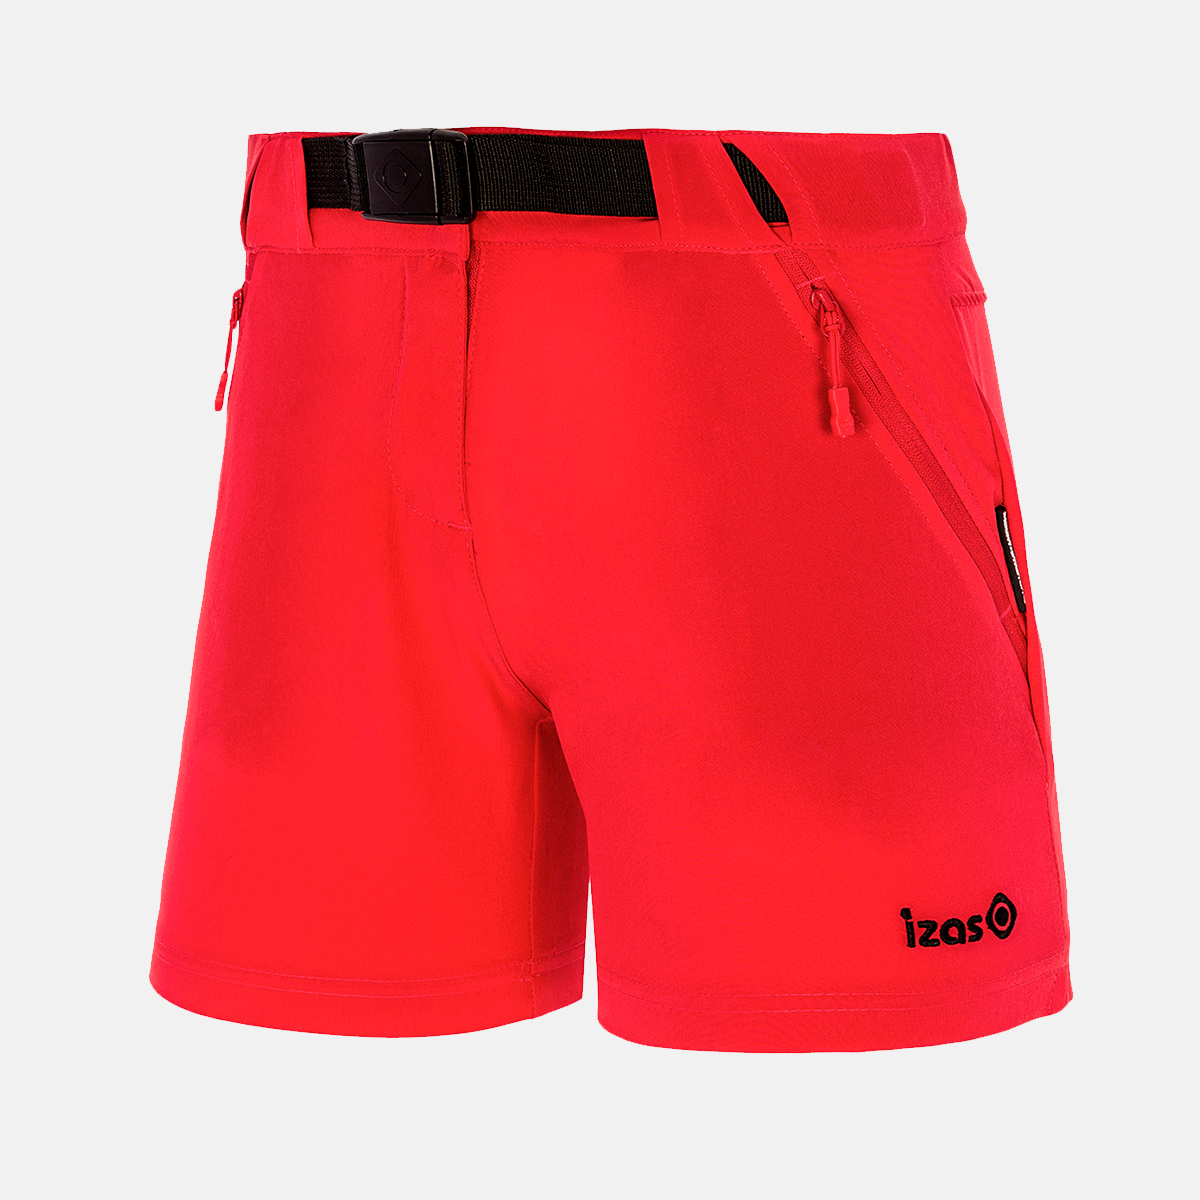 WOMAN'S NAGELA STRETCH SHORT RED